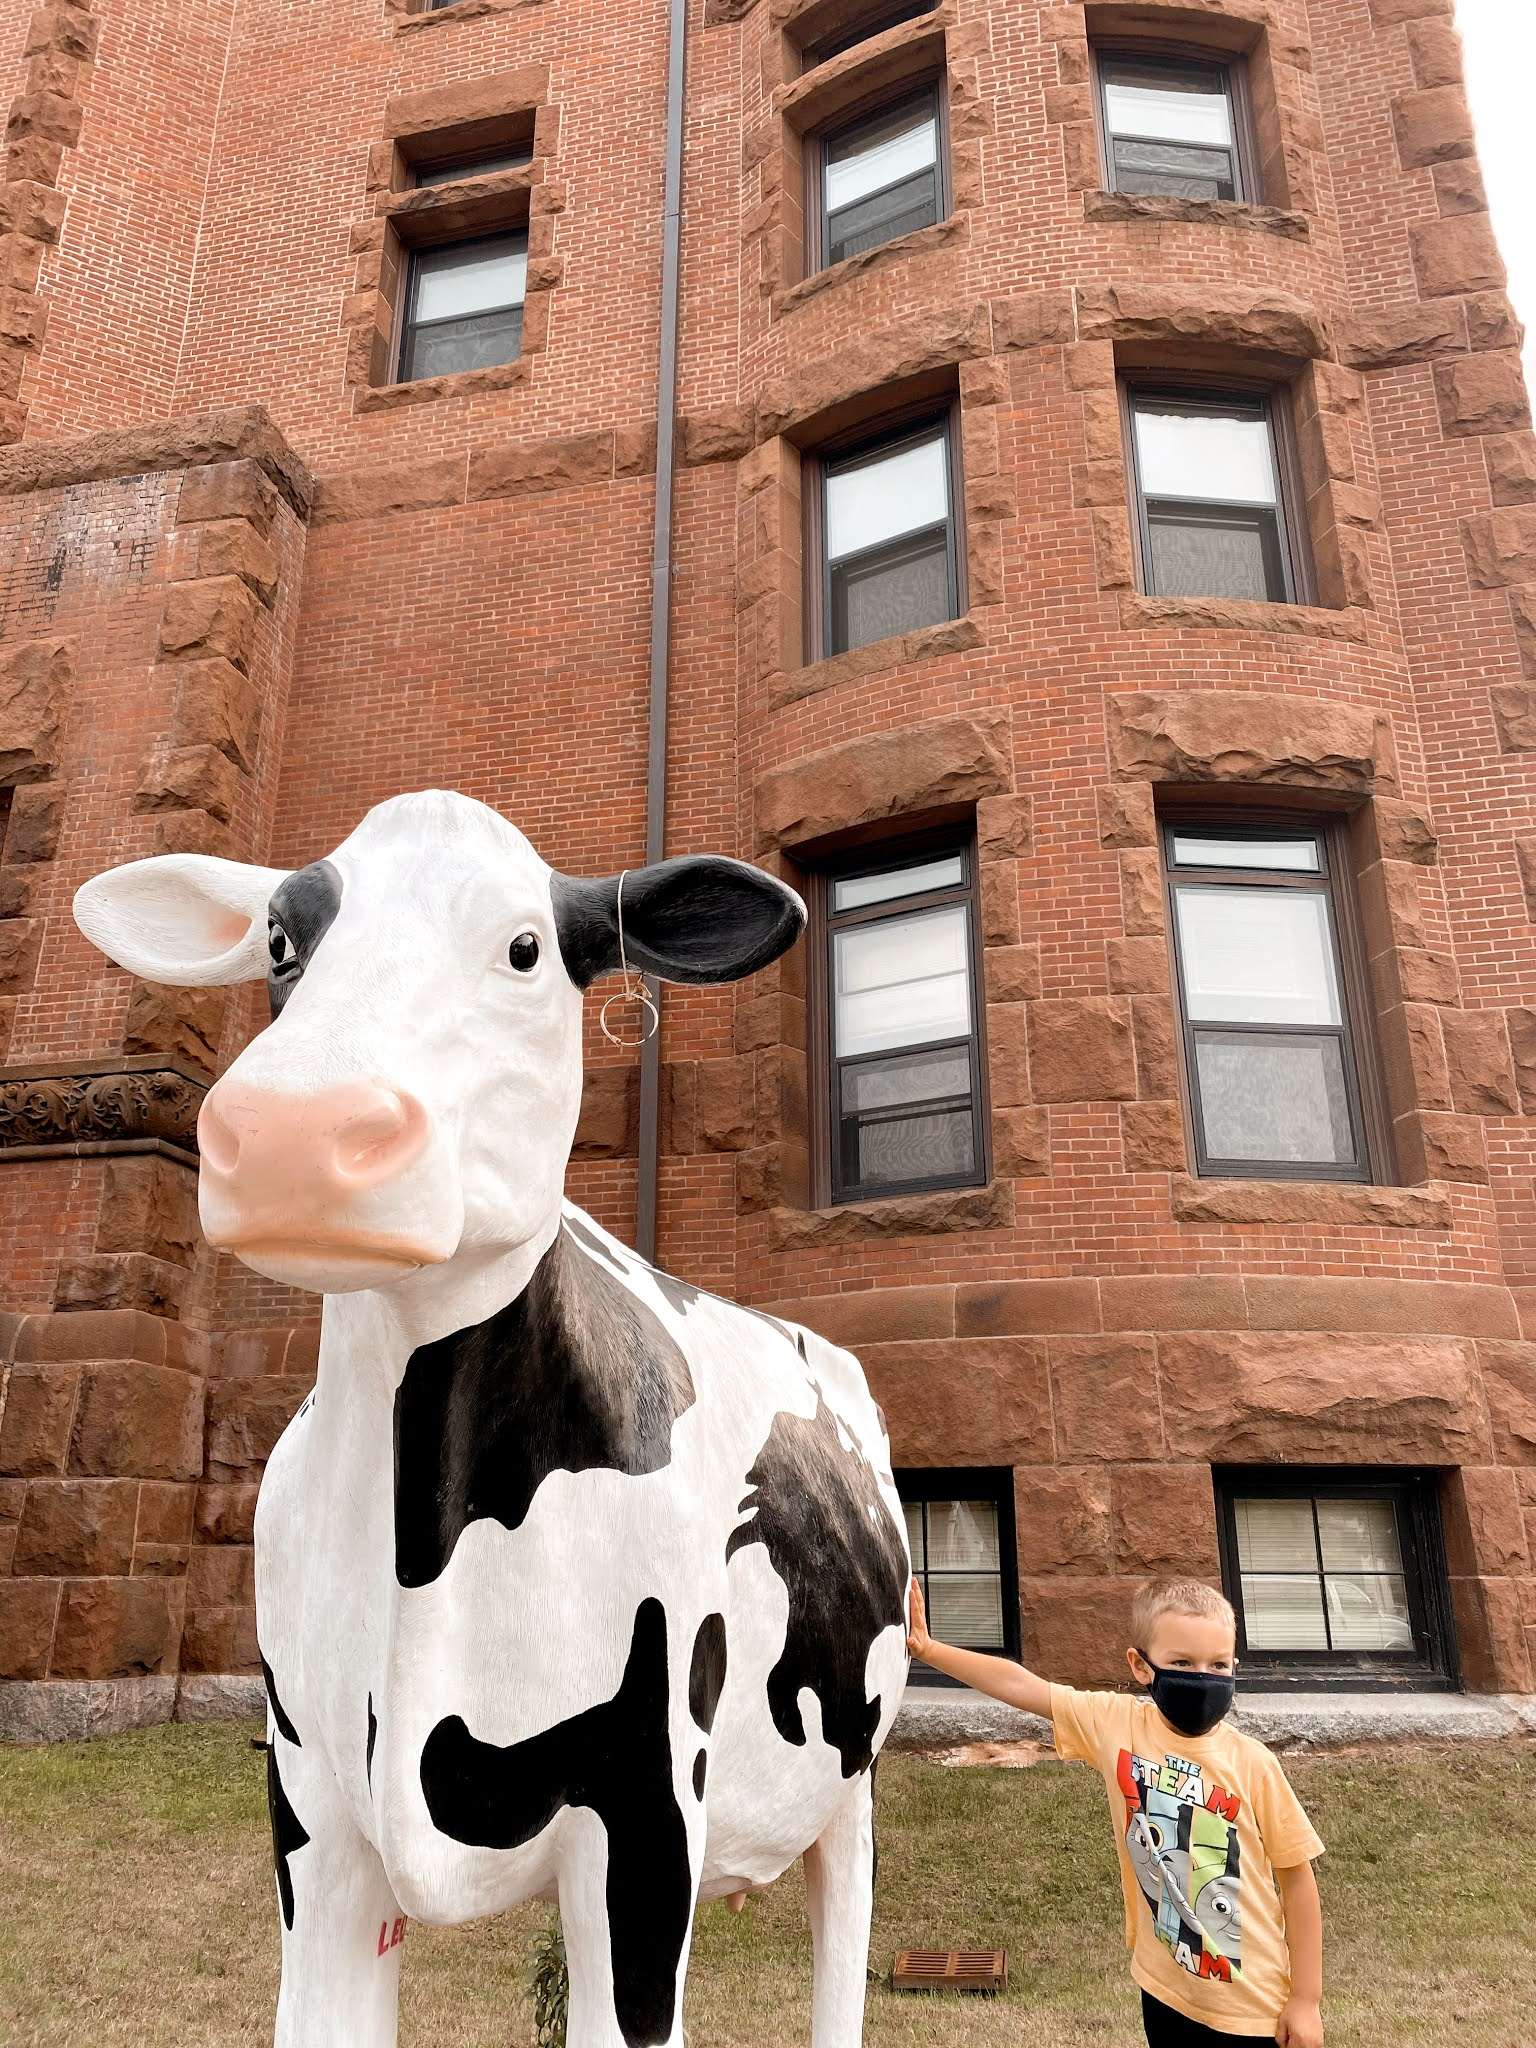 Department of Agriculture Cow in Vermont | biblio-style.com